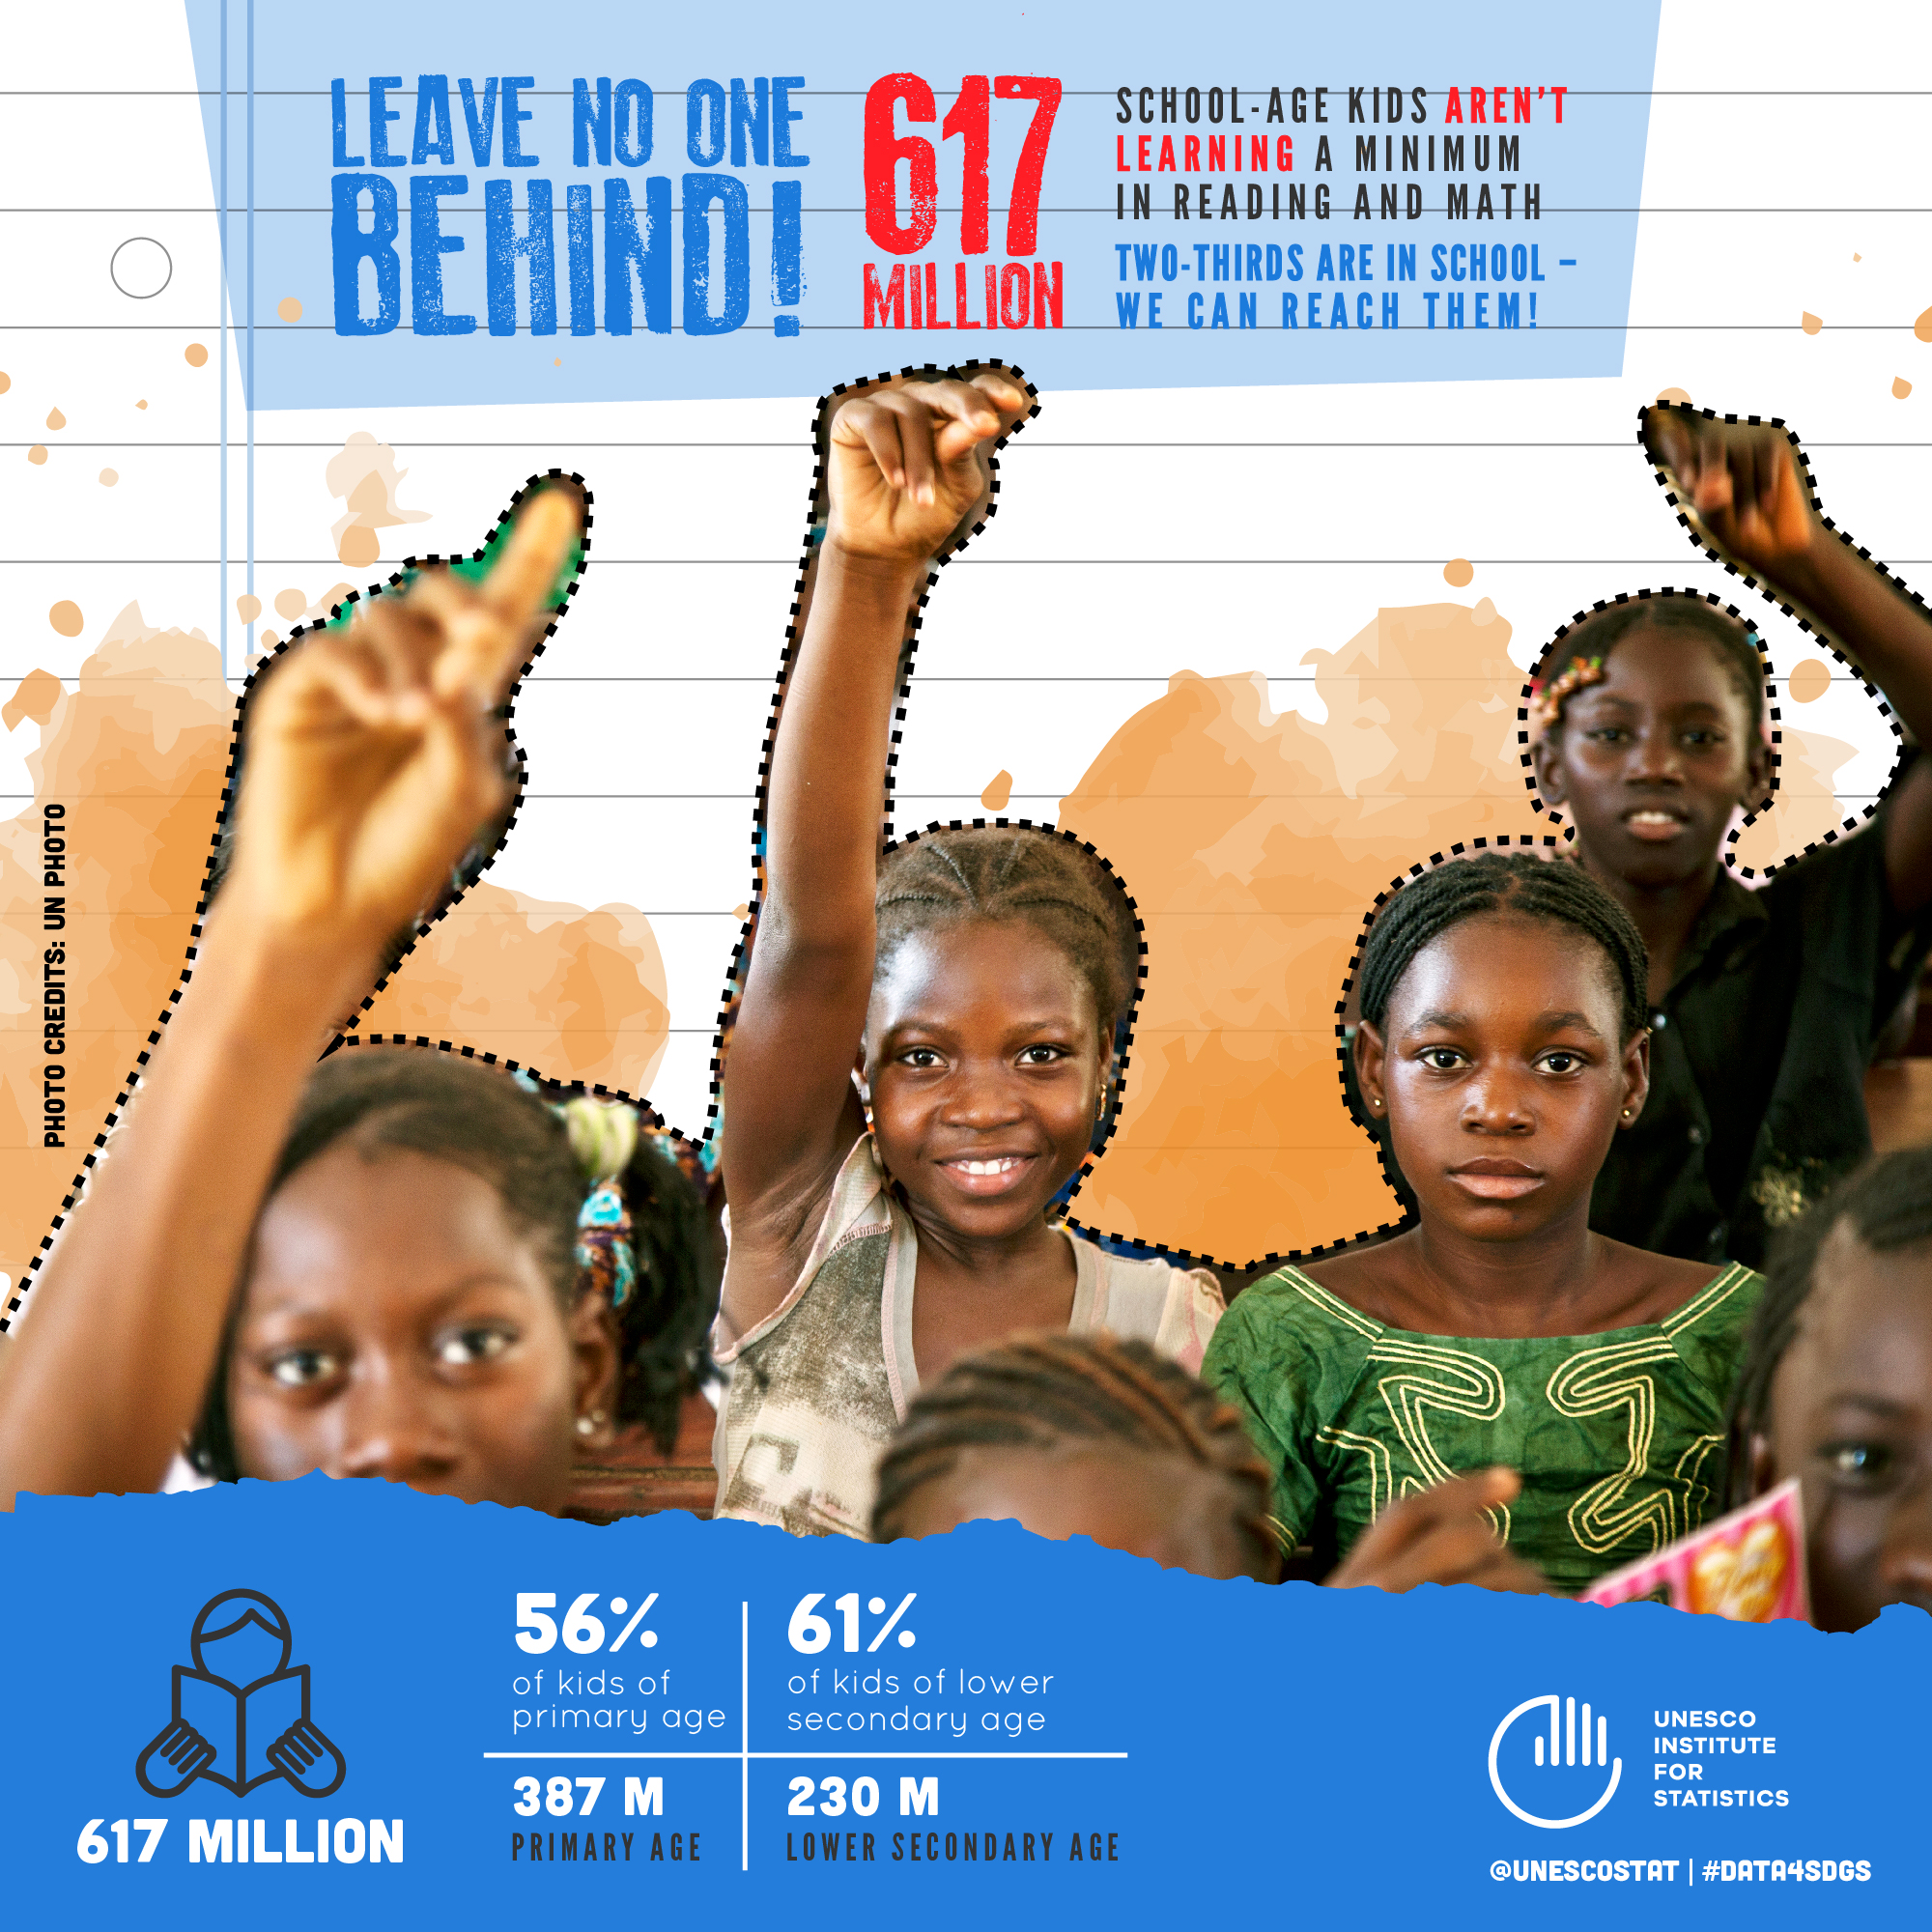 Image result for 617 million children and adolescents not getting the minimum in reading and math